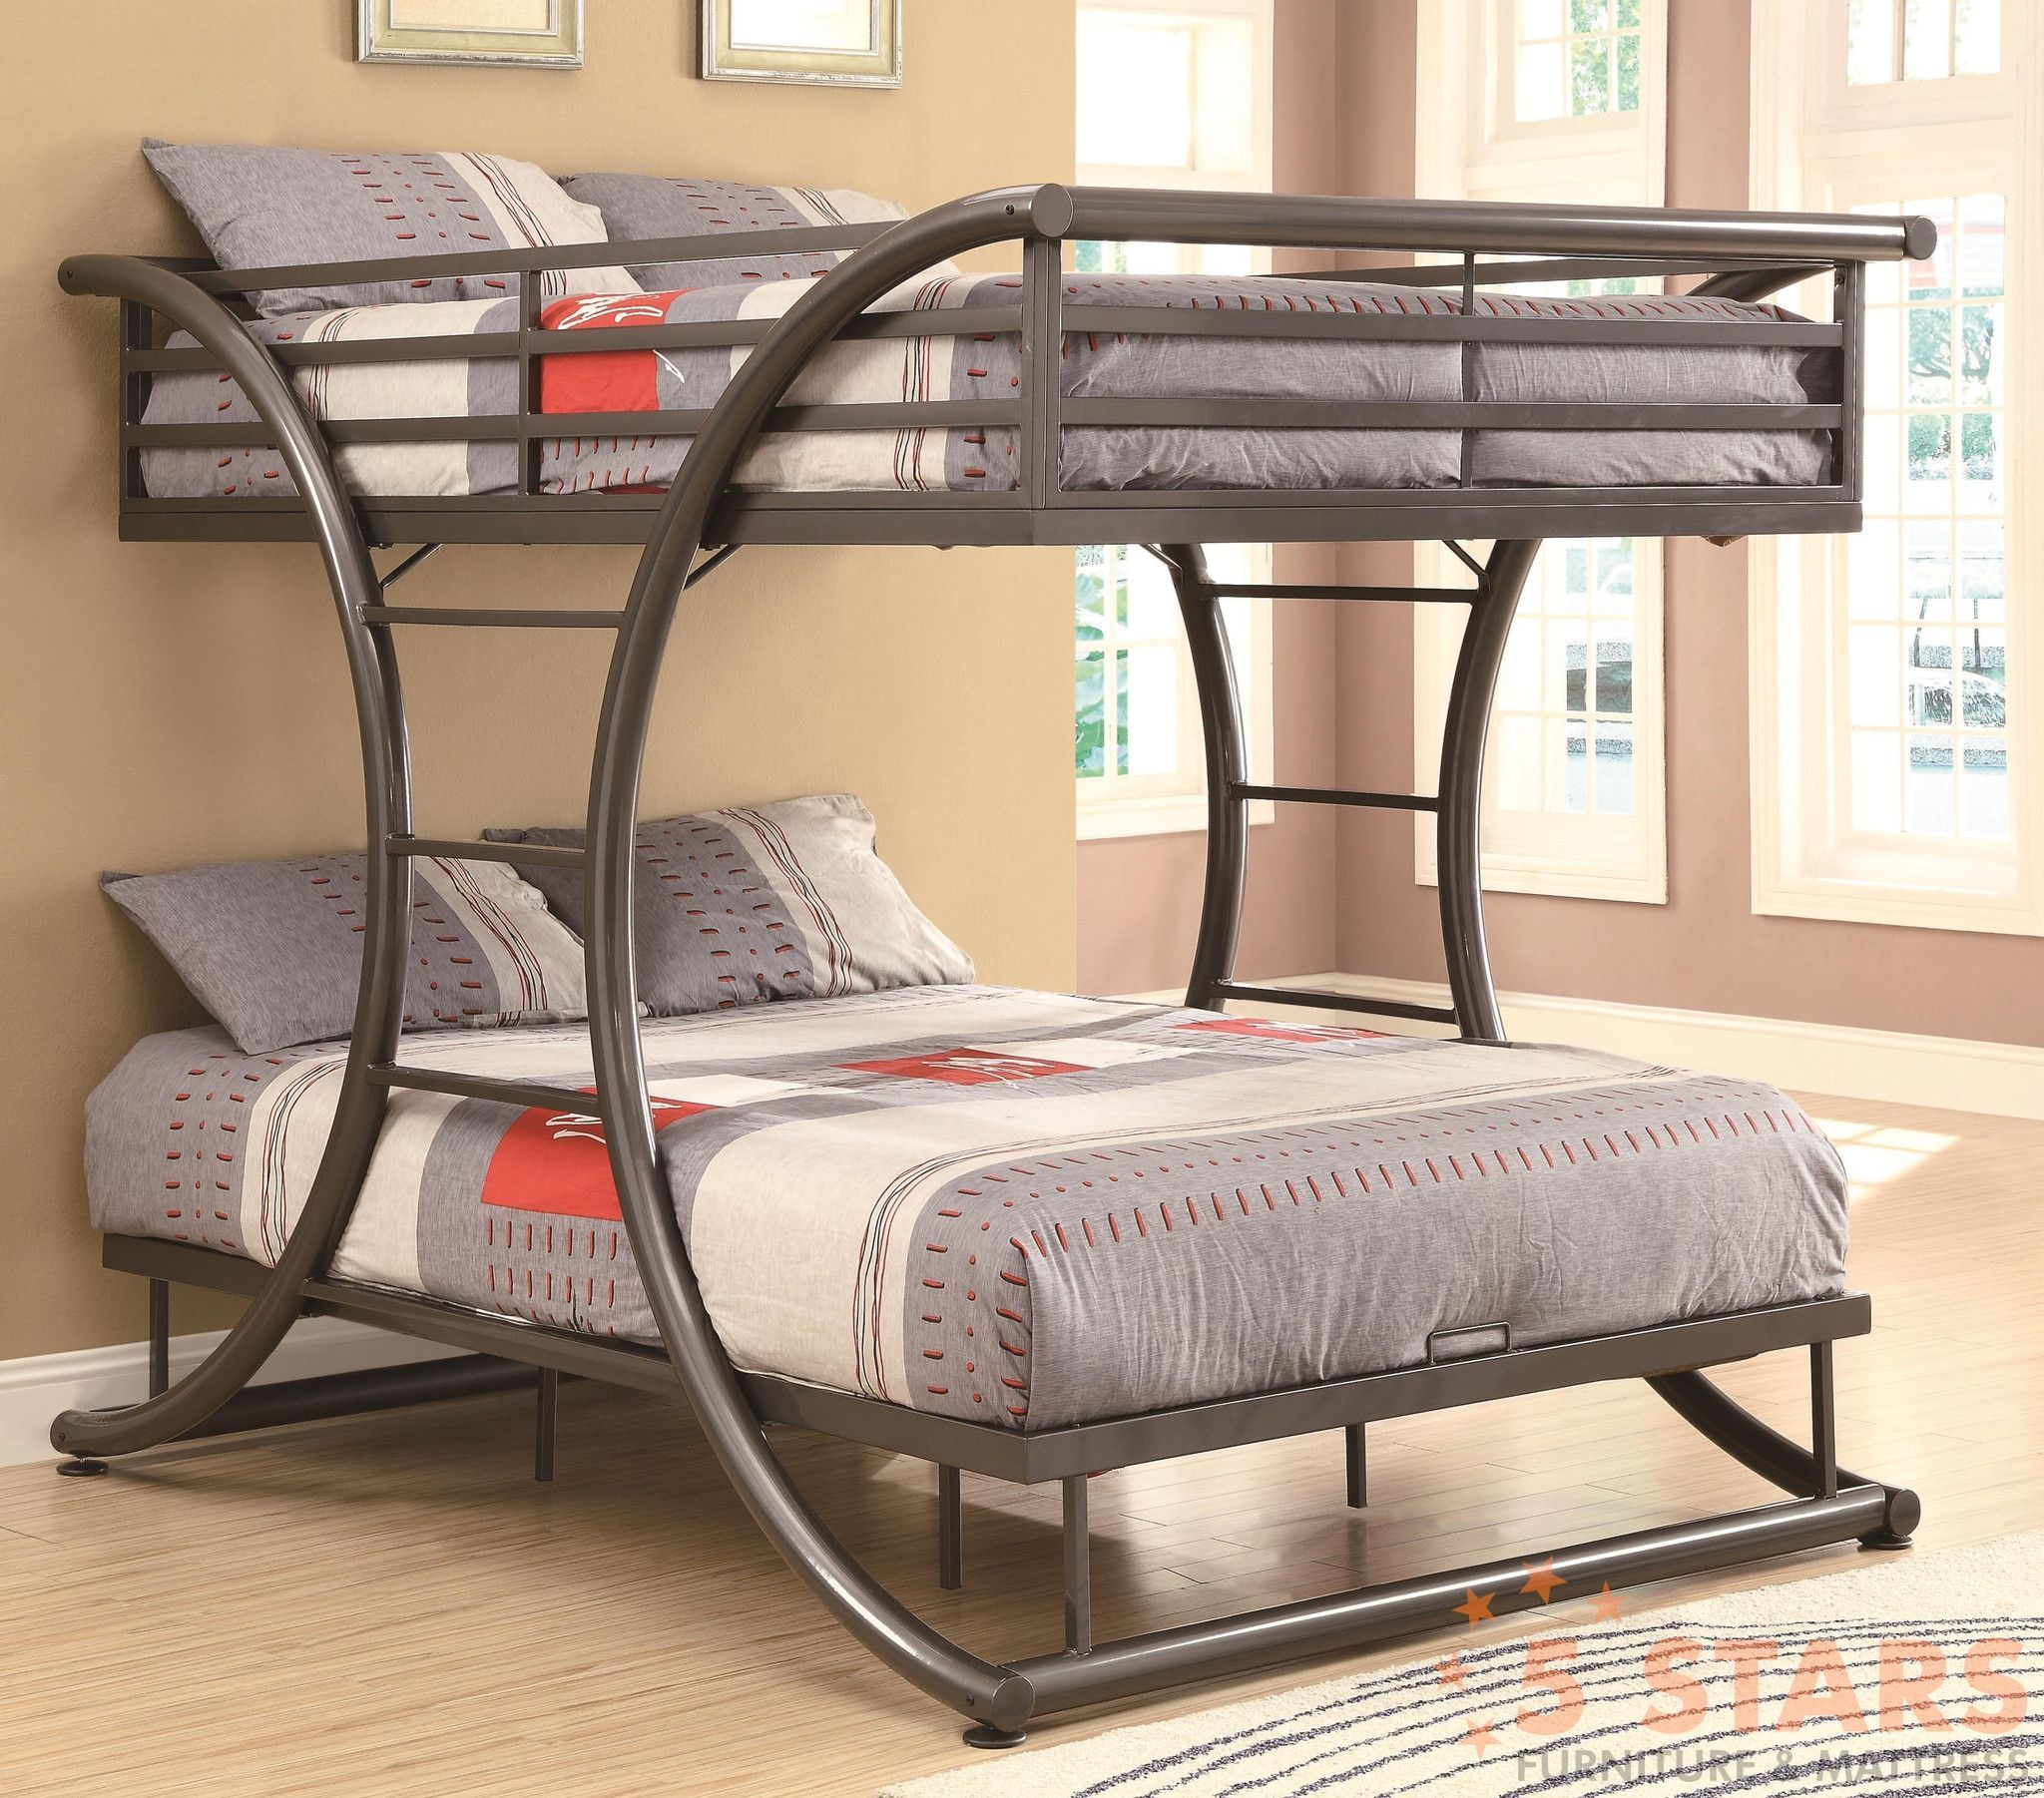 Queen size loft bed with stairs  This fun and stylish fulloverfull size bunk bed comes in a sleek